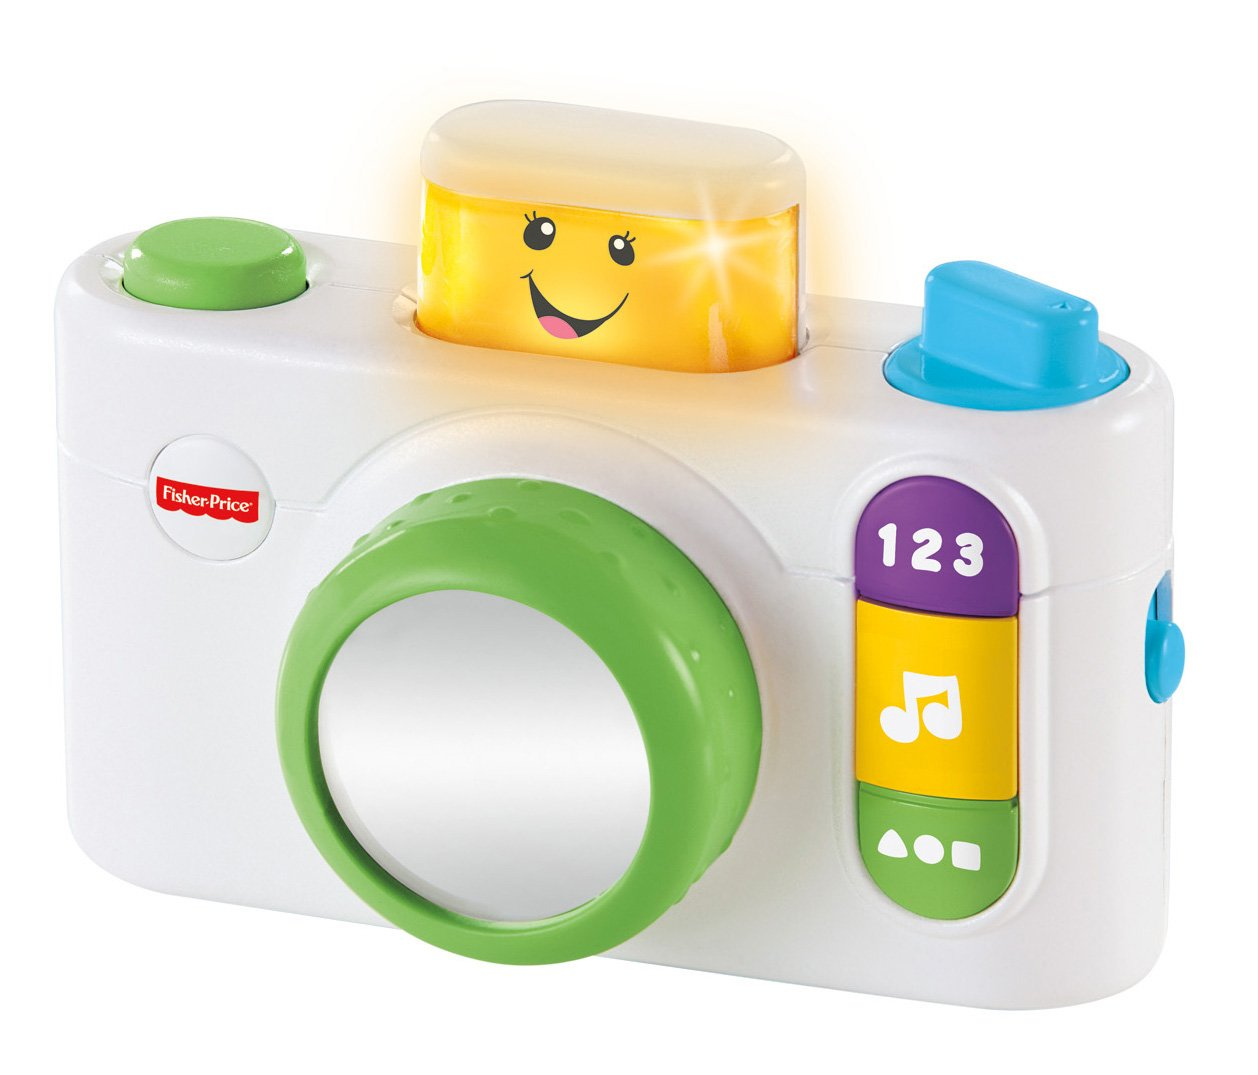 Fisher-Price Laugh & Learn Click 'n Learn Camera, White by Fisher-Price (Image #5)